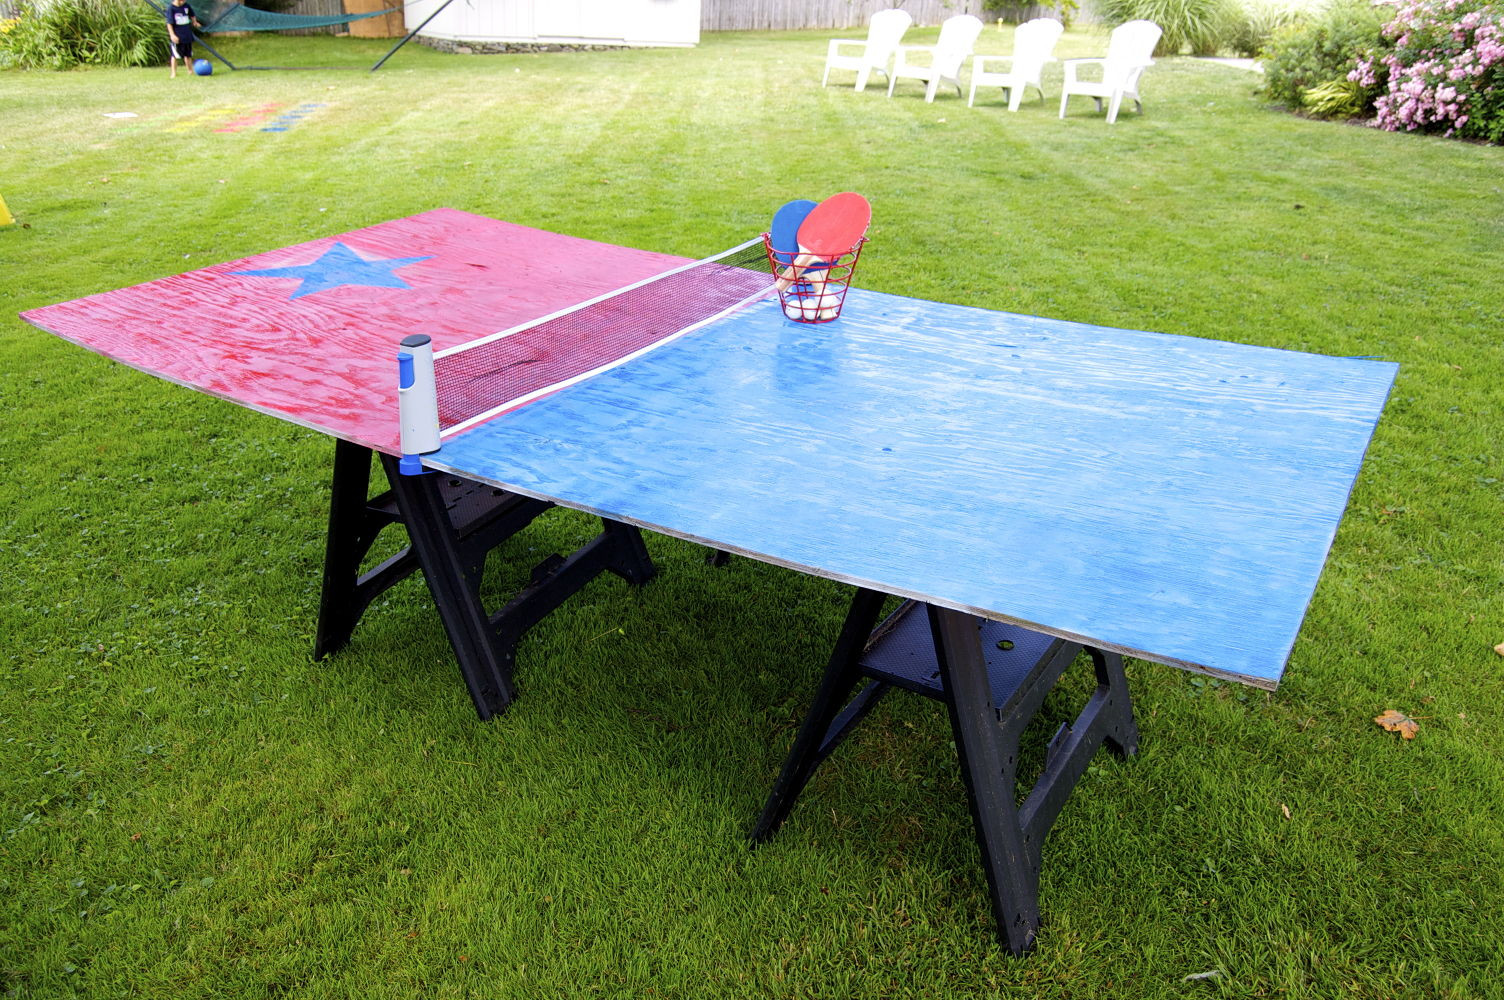 Best ideas about DIY Outside Ping Pong Table . Save or Pin 13 Crazy Fun Yard Games Your Family Will Flip for This Now.